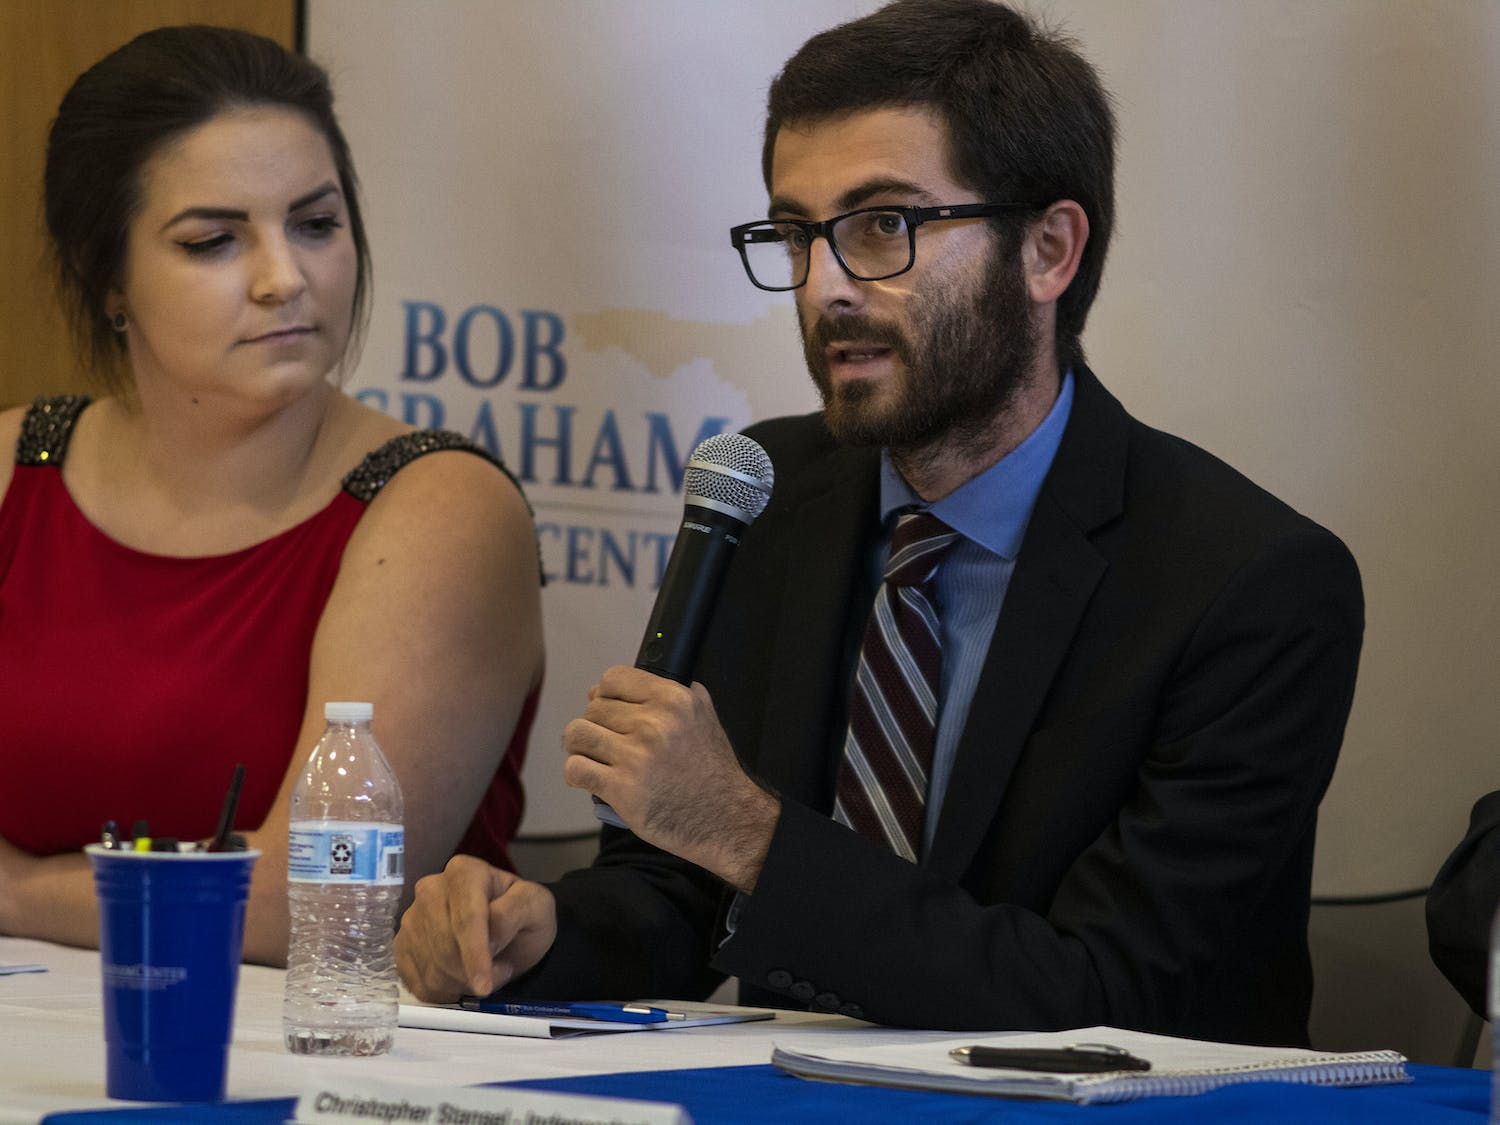 Inspire President Zachary Amrose (right) speaks at the debate Monday night. To his left sits Ashley Grabowski, former Inspire Senator and current Inspire Party campaign manager.